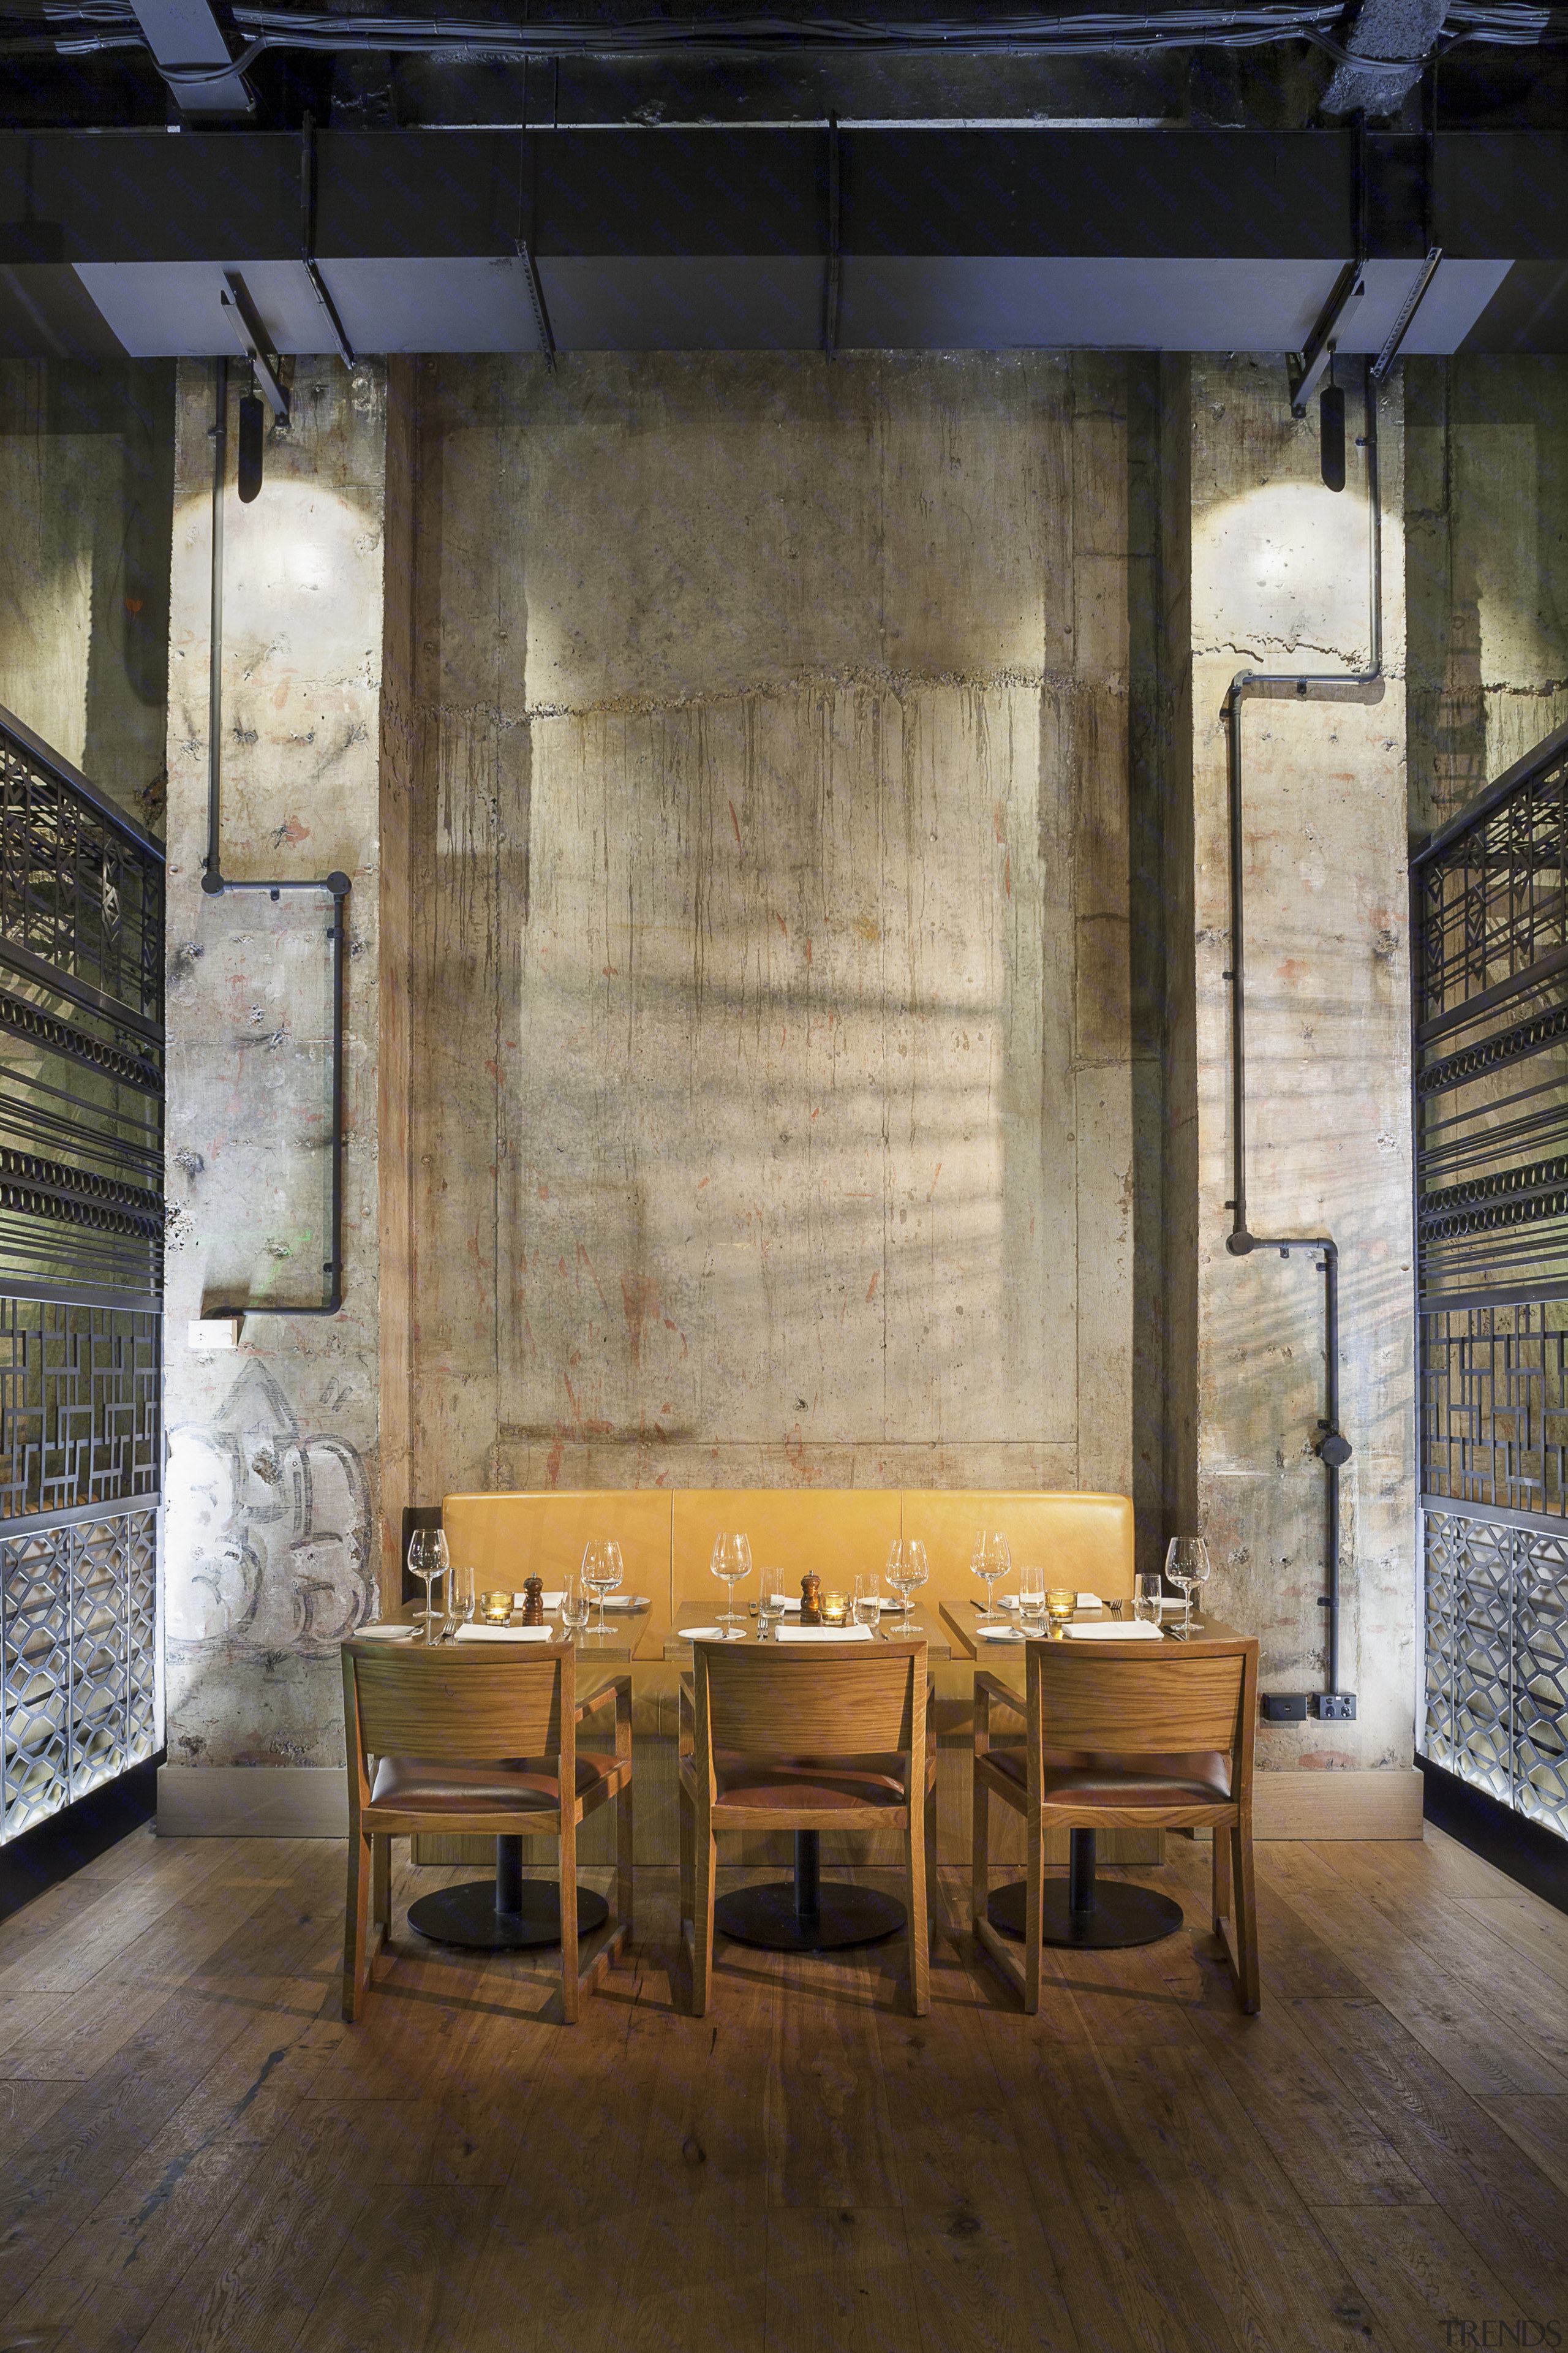 Stripped-back concrete walls and exposed services heighten the architecture, furniture, interior design, table, wall, wood, brown